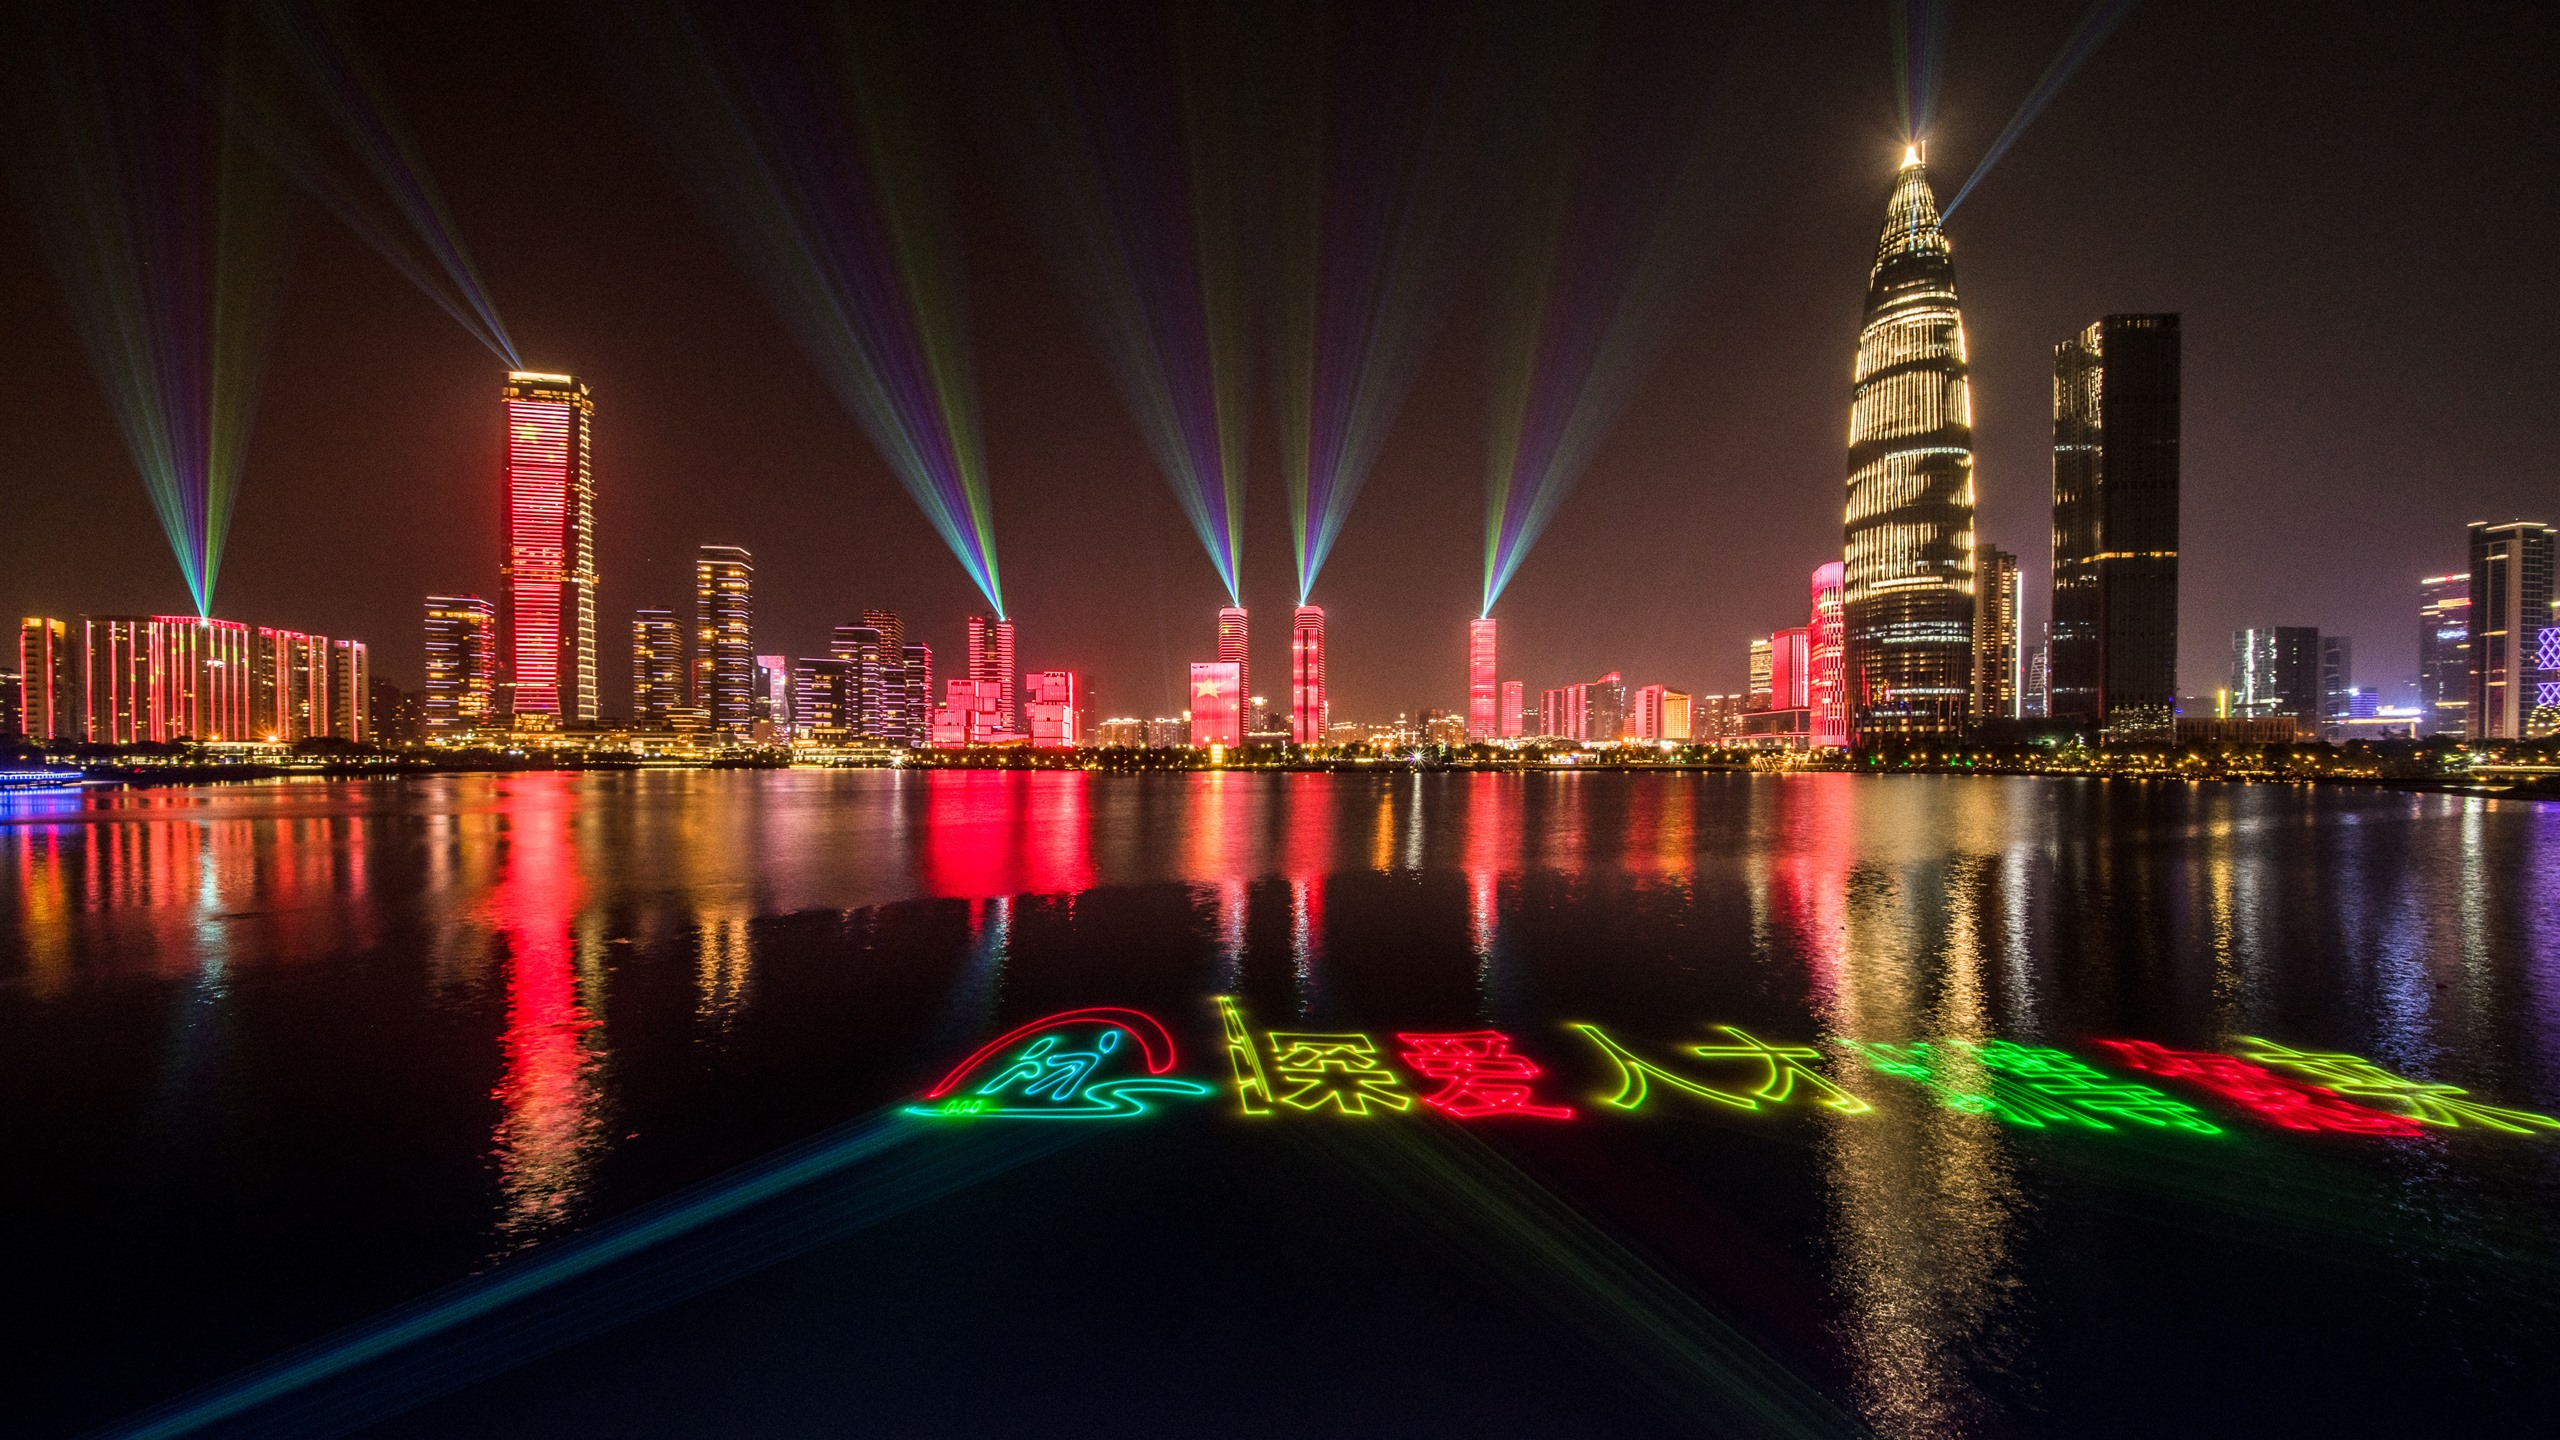 Shenzhen Light Show Night Skyscrapers Lake 1125x2436